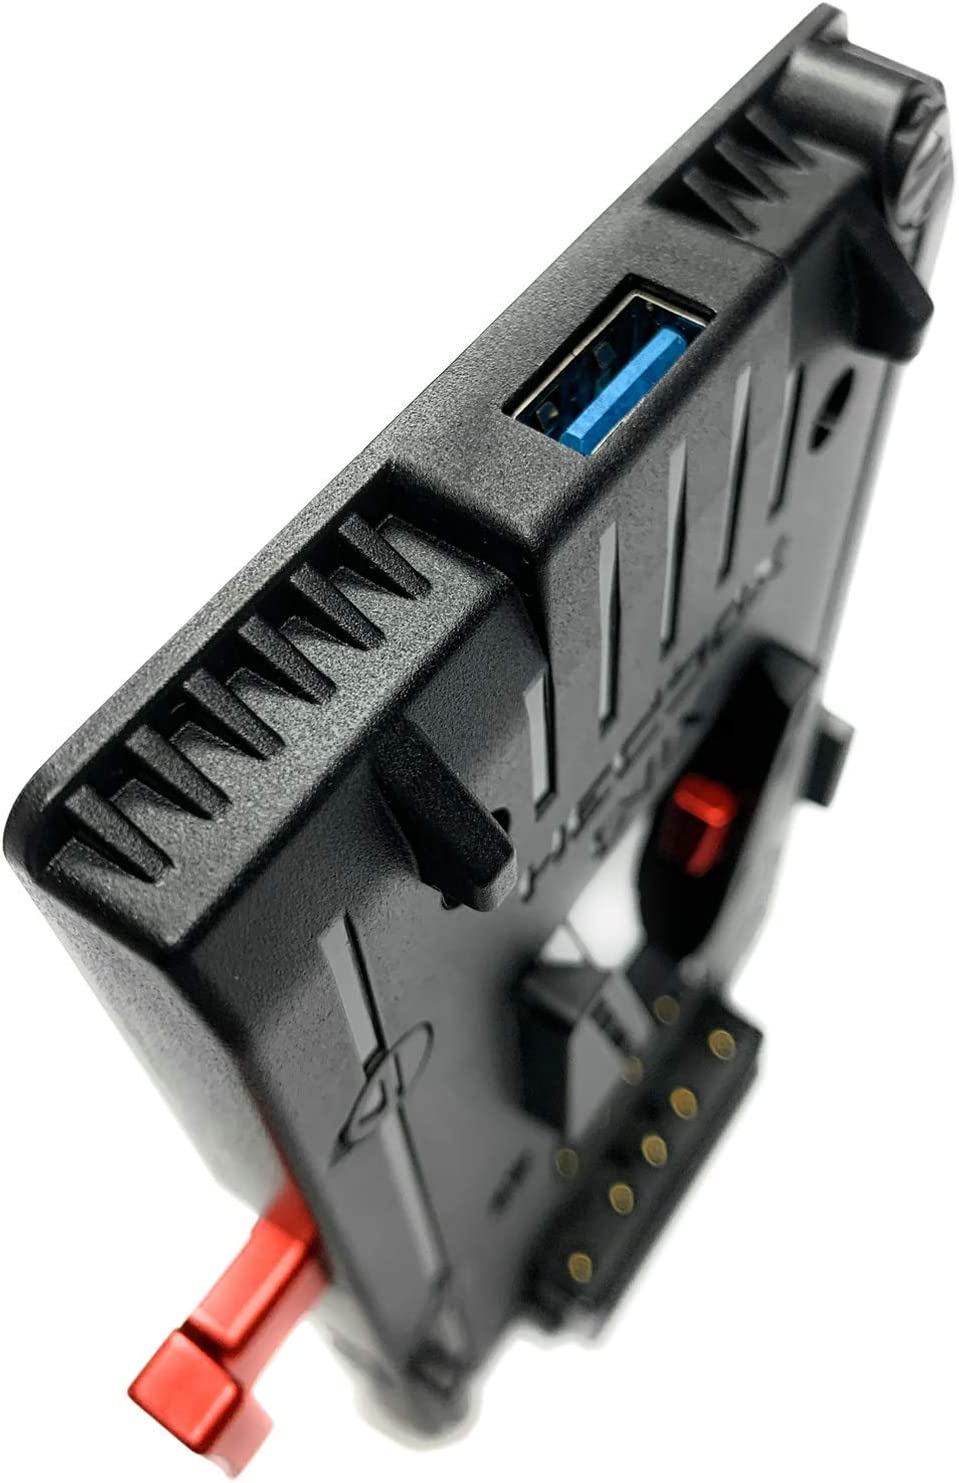 V Mount//Lock Battery Adapter Plate with 1x USB 5V//2.1A and 3X D-Tap 14.8V//148W Power HEDBOX Extra 20in//50cm Breakaway Cable with pro 2-pin Push FGG.0B.302 Angle Connector for Teradek UNIX-0BL